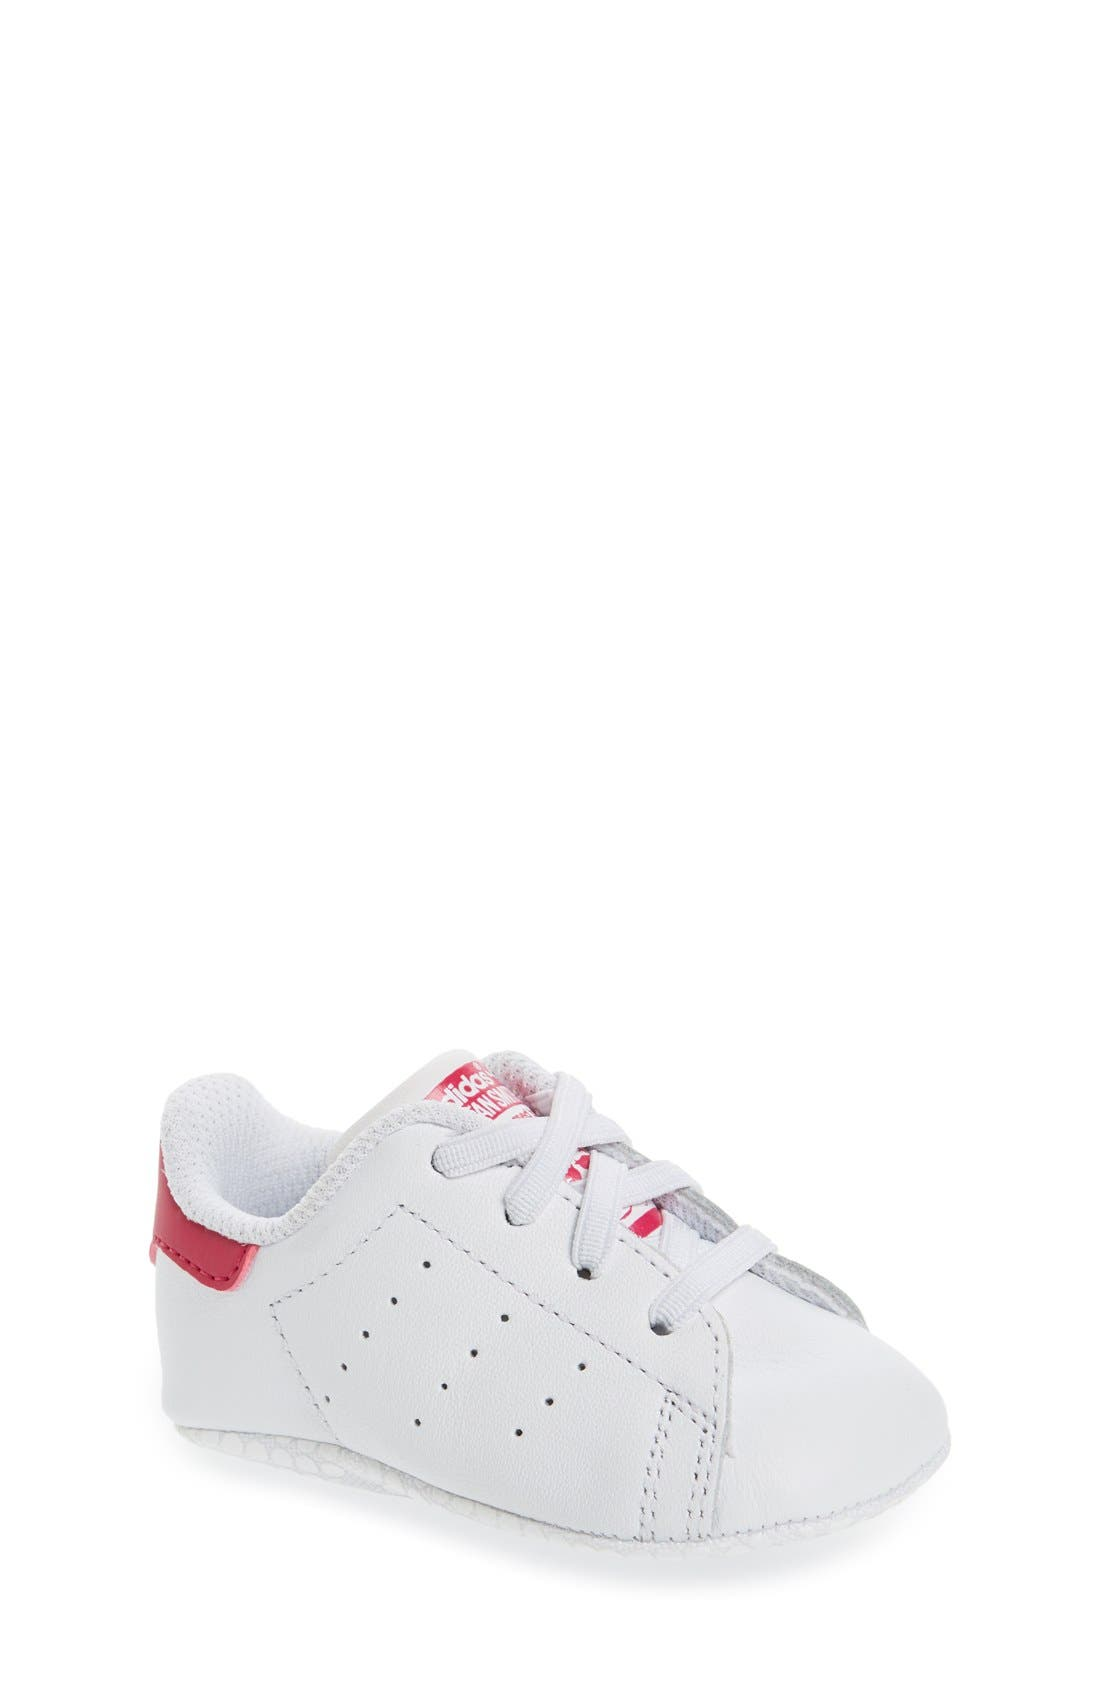 adidas shoes pink and white. adidas \u0027stan smith\u0027 crib sneaker shoes pink and white